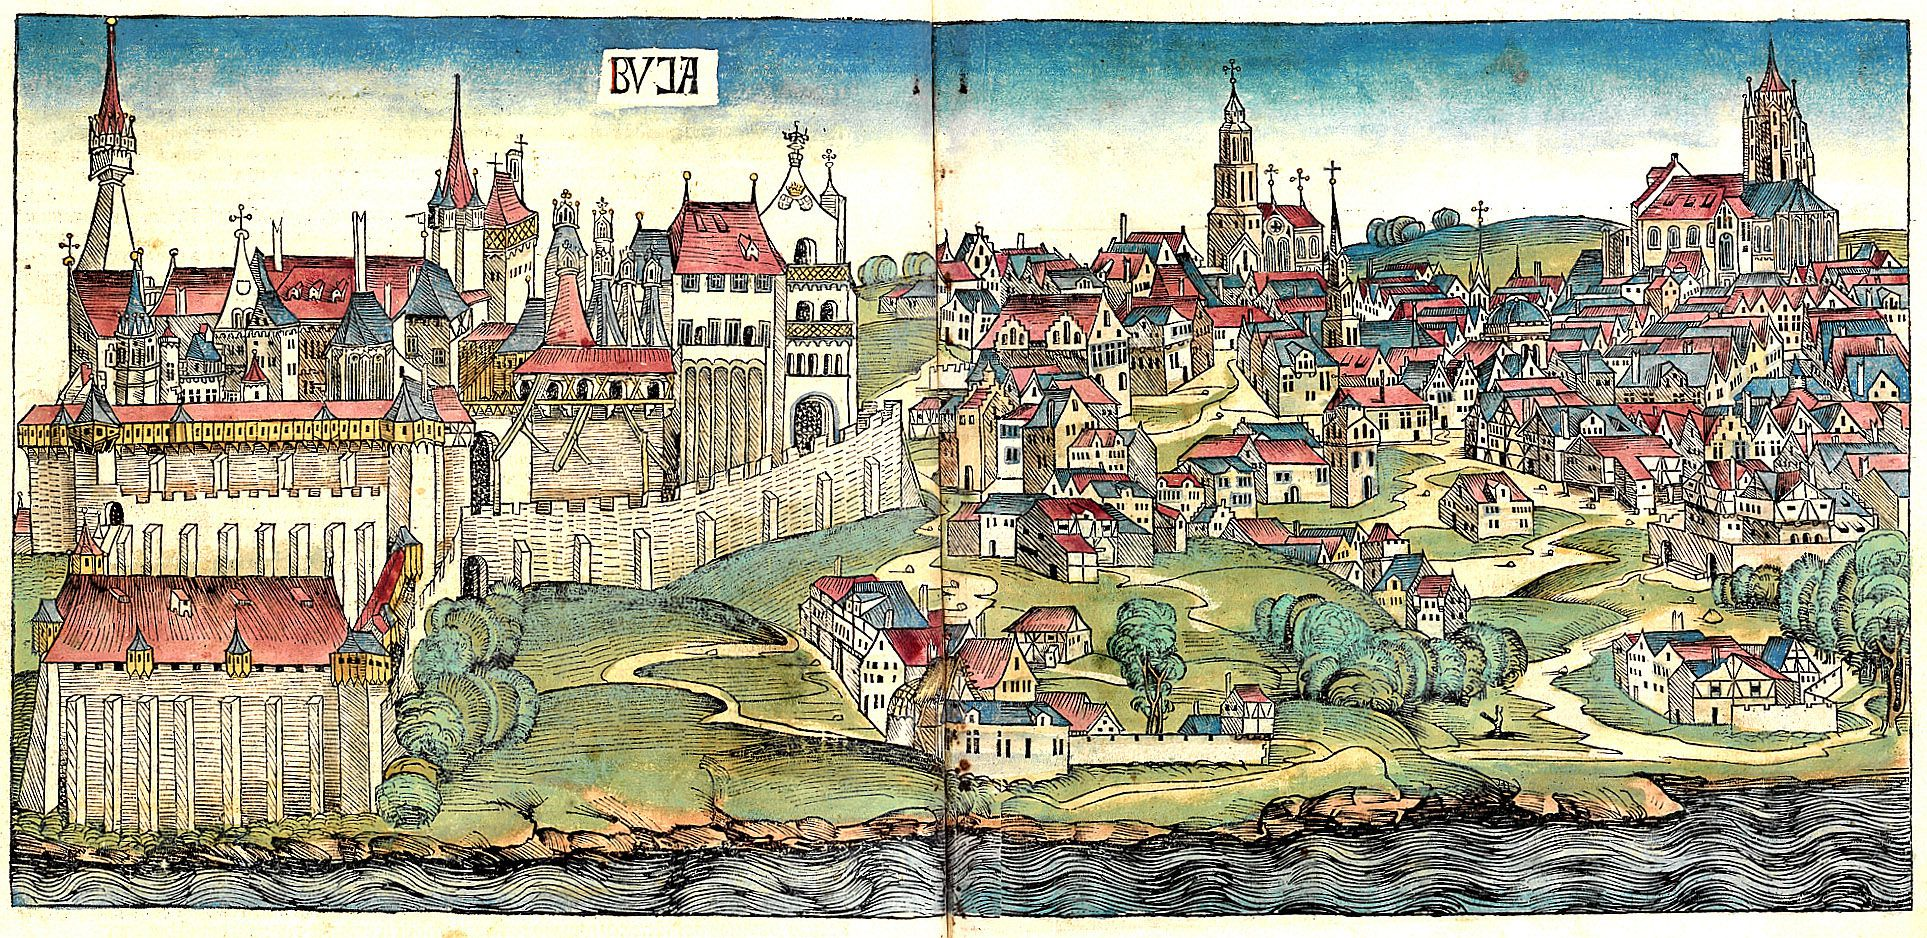 The Early High And Late Middle Ages